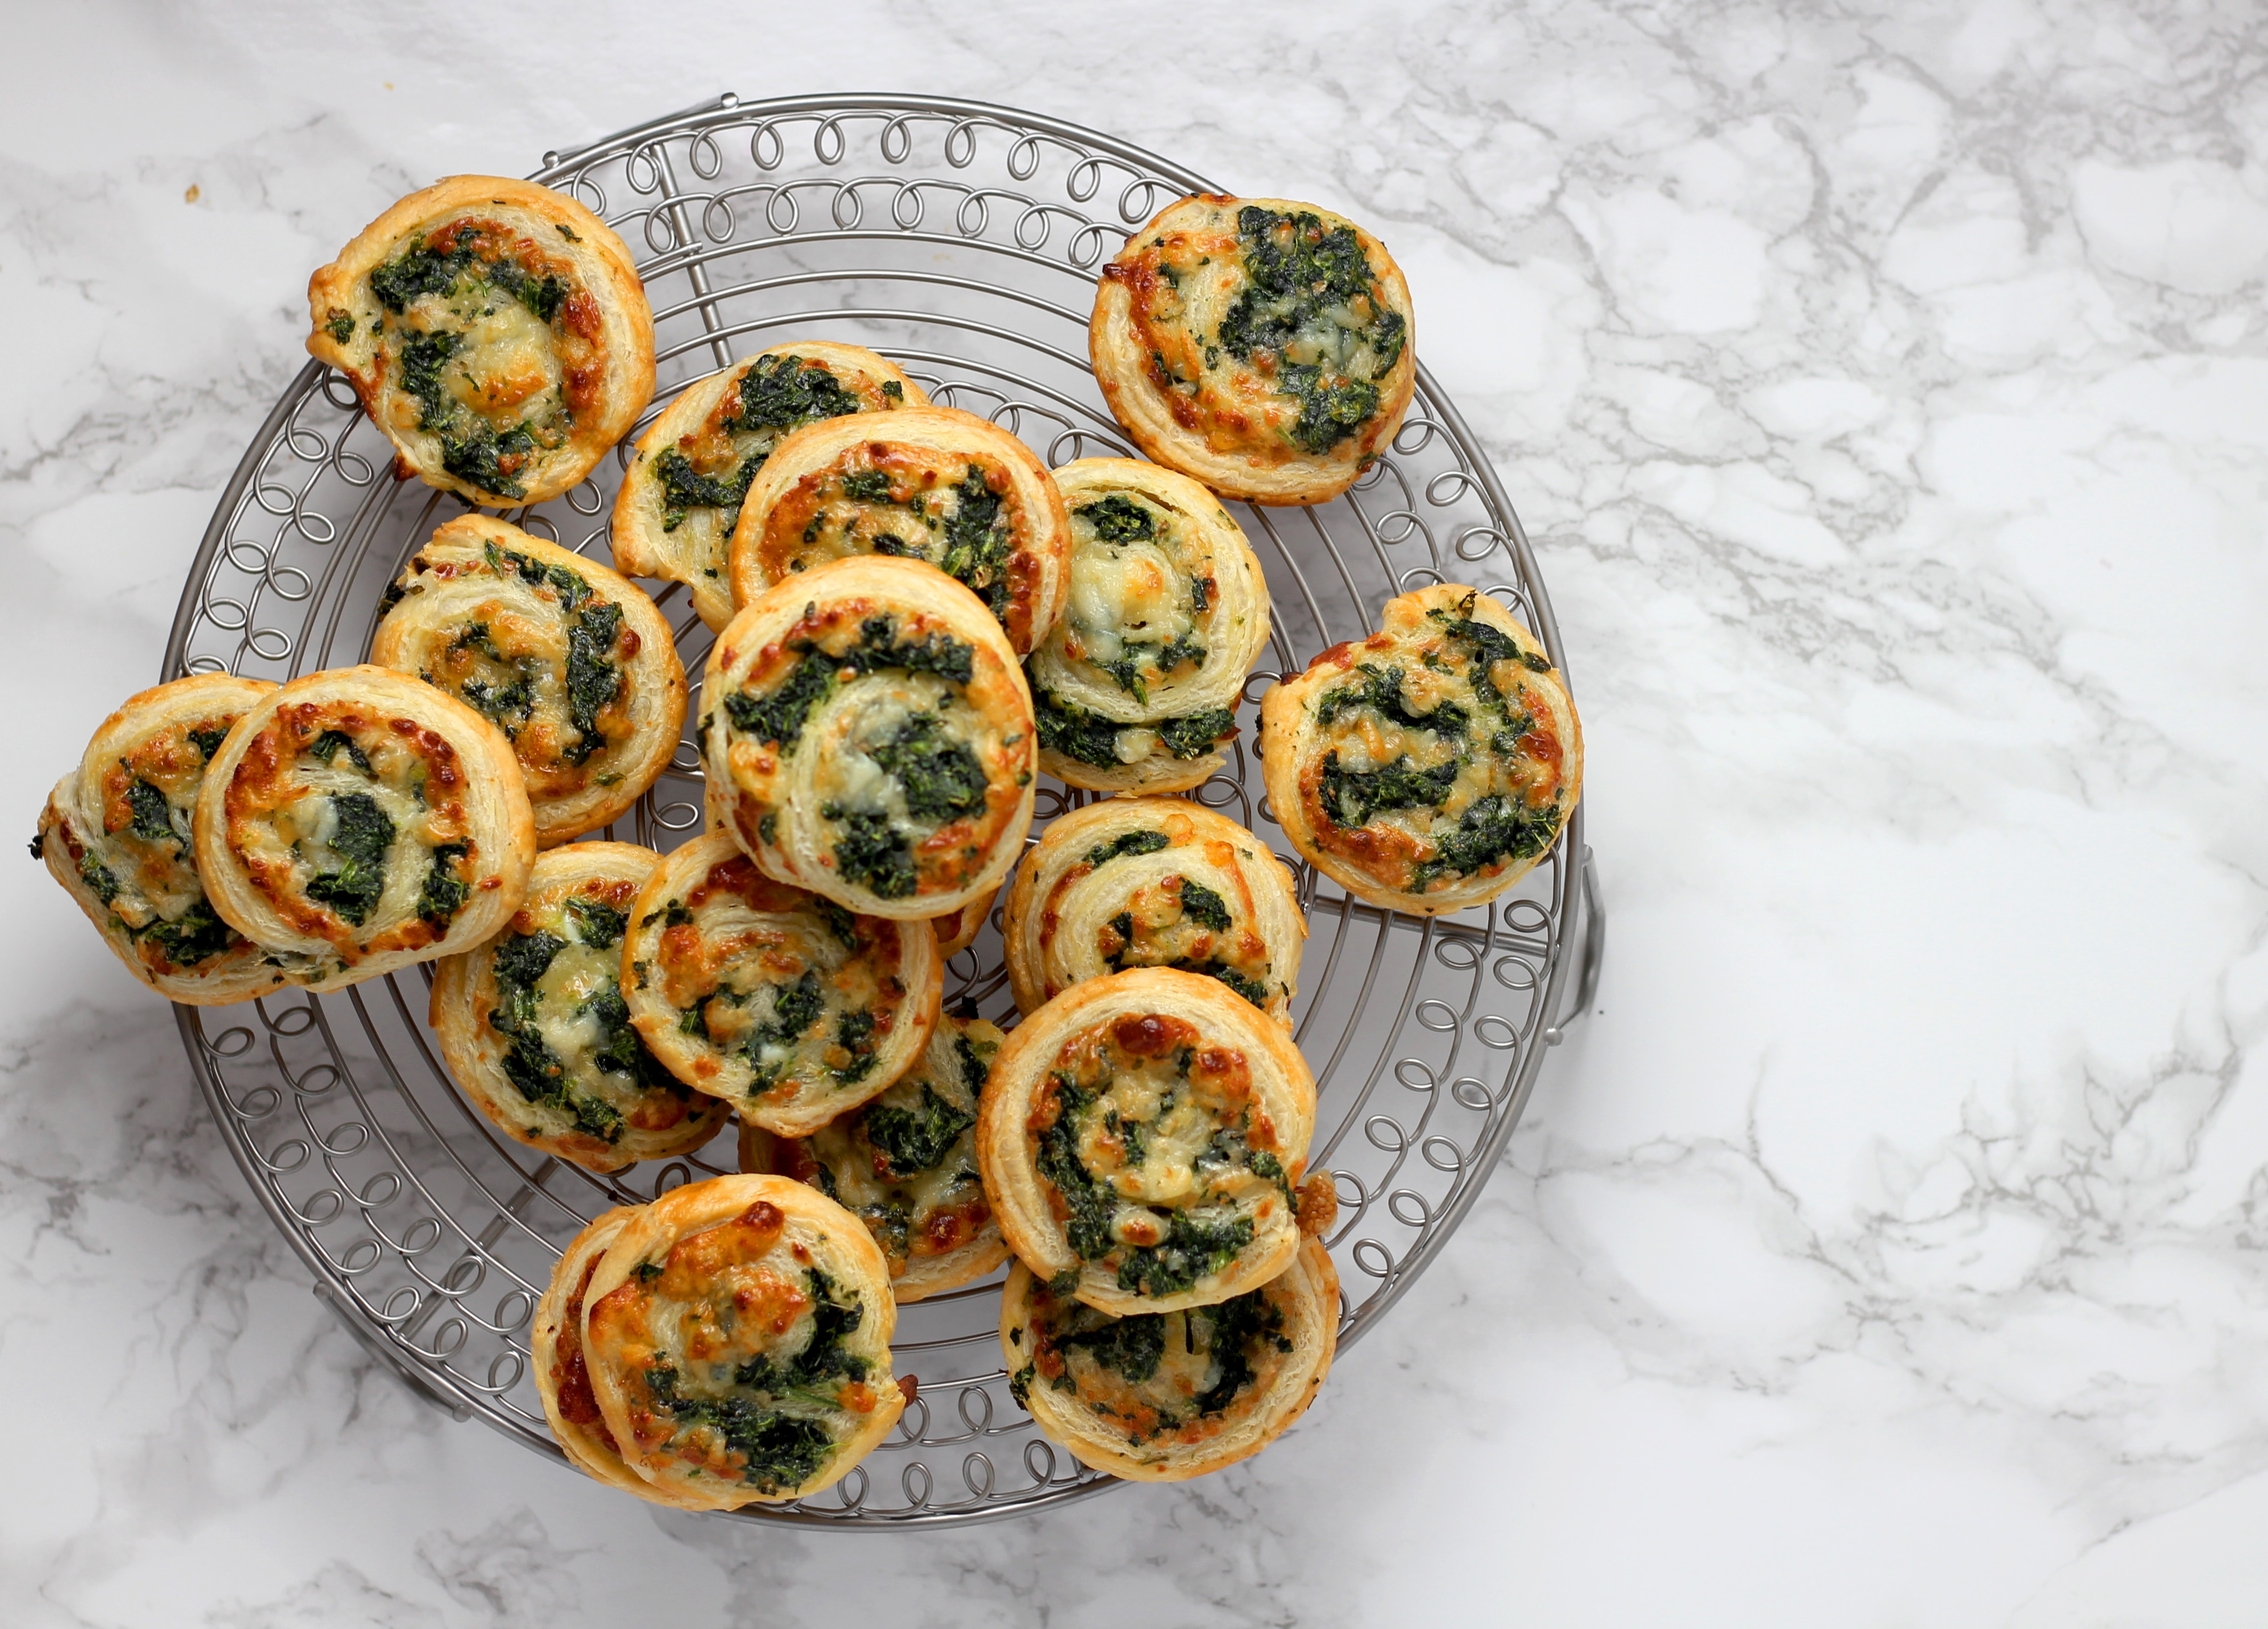 A few vegetarian and vegan canapé ideas for the holidays